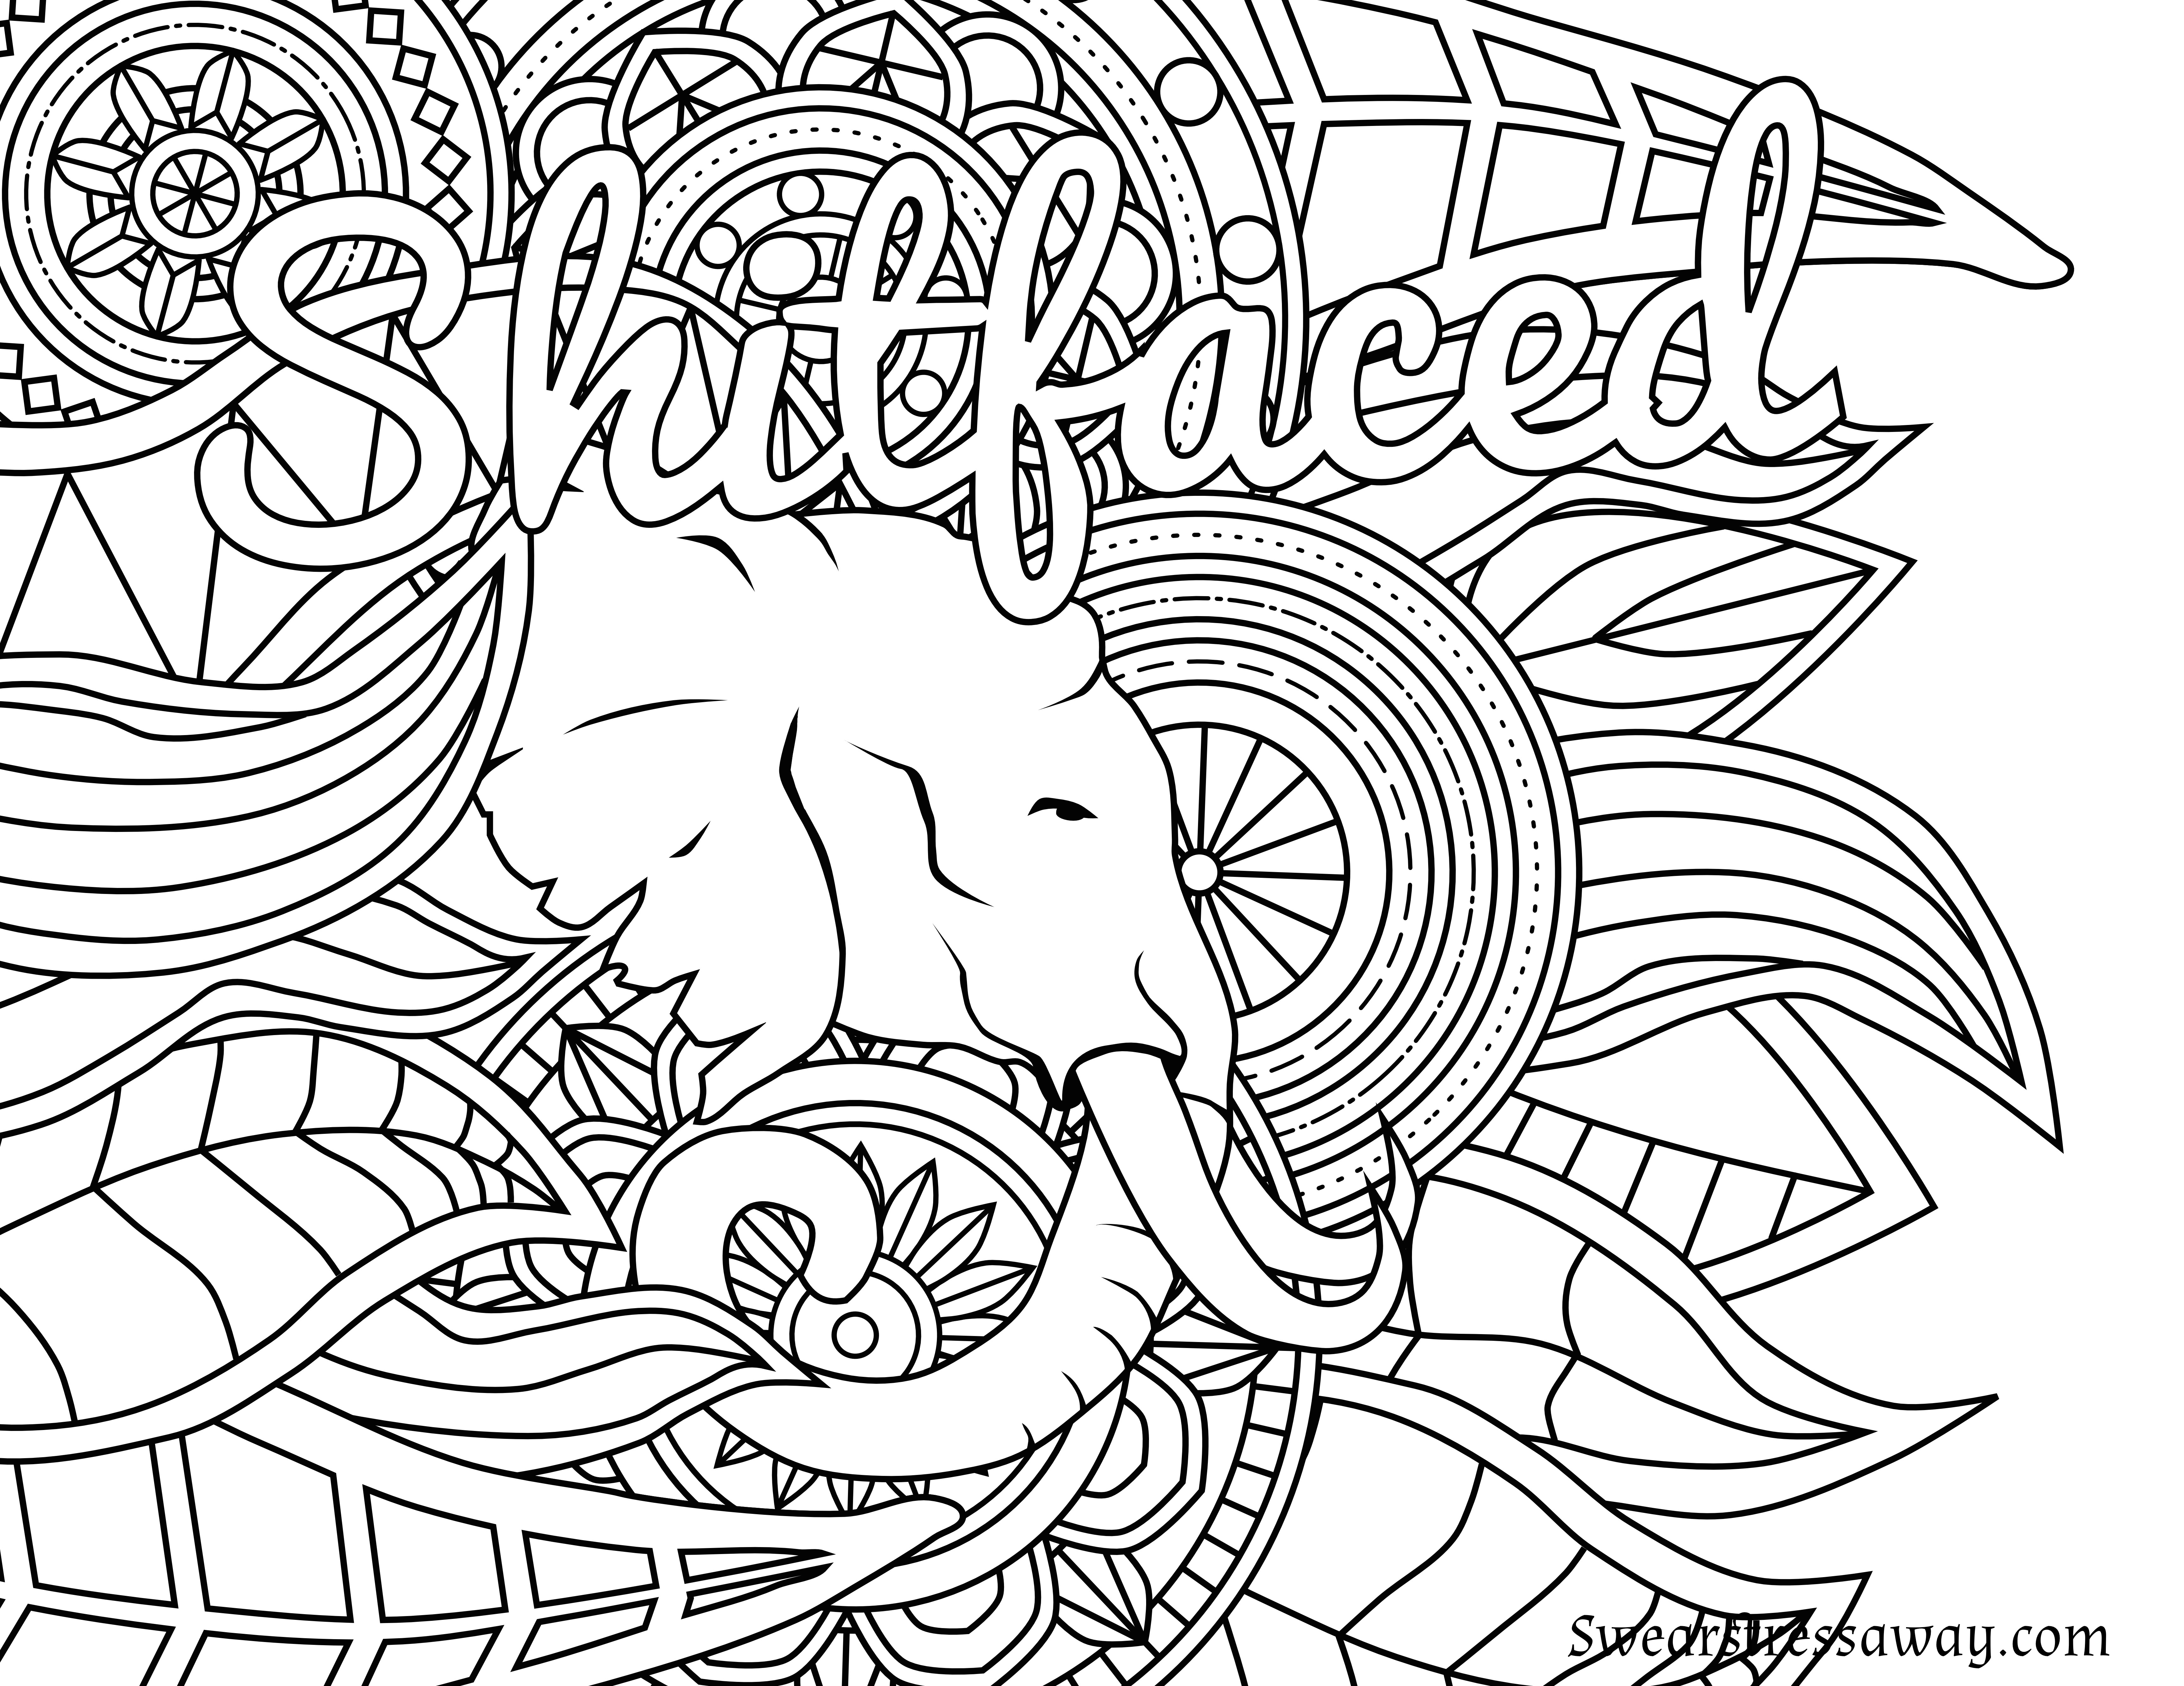 Best ideas about Free Swear Word Coloring Pages For Adults . Save or Pin Free Printable Coloring Page Shitfaced Swear Word Now.